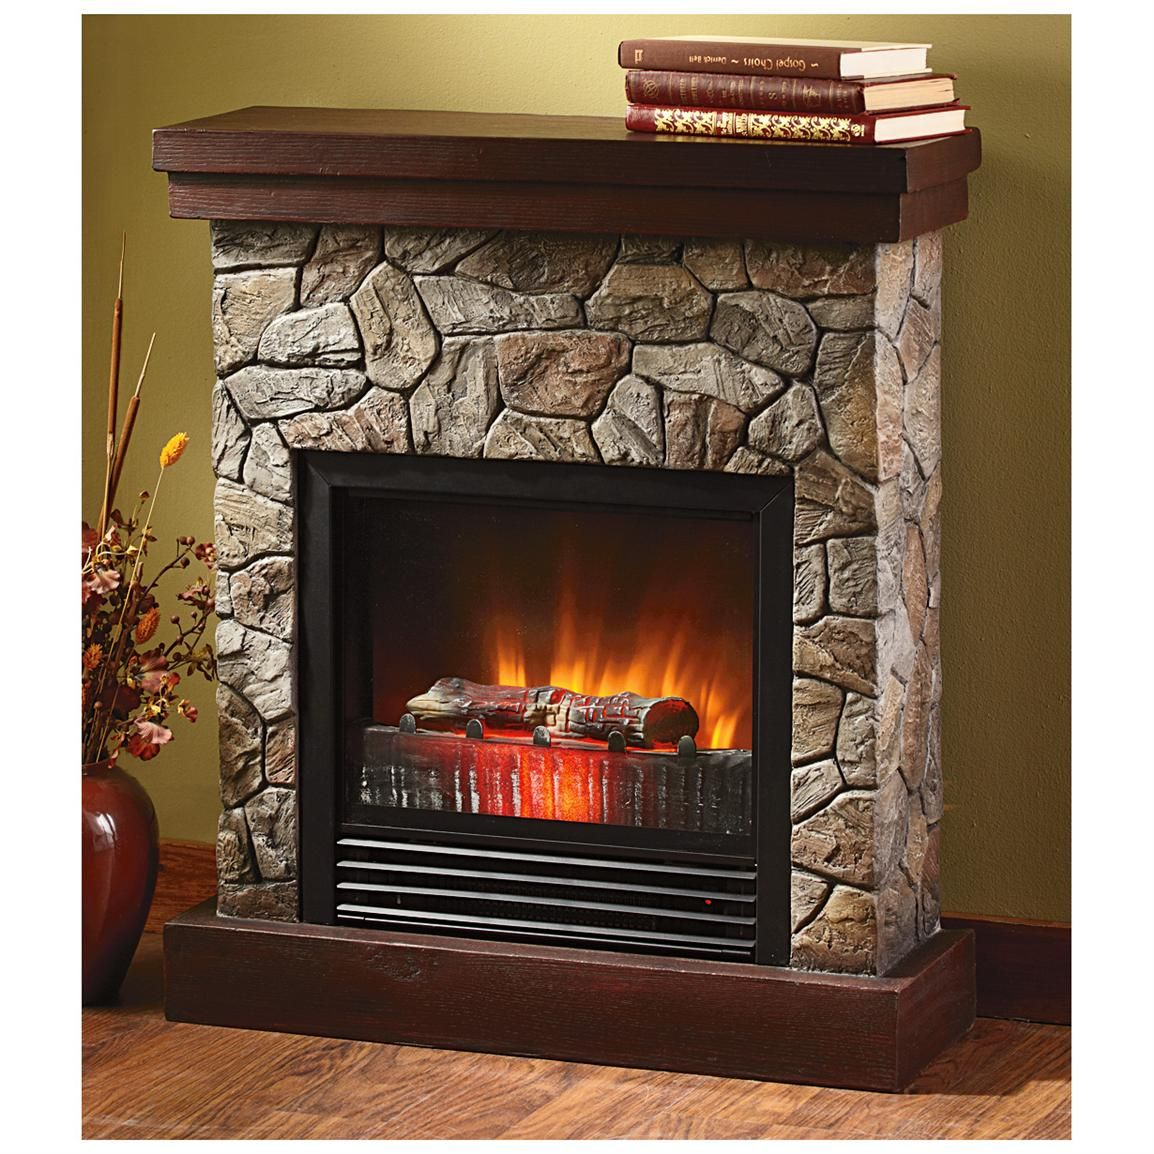 Bedroom Fireplace Heater Castlecreek Electric Quotstone Quot Fireplace Heater Fits